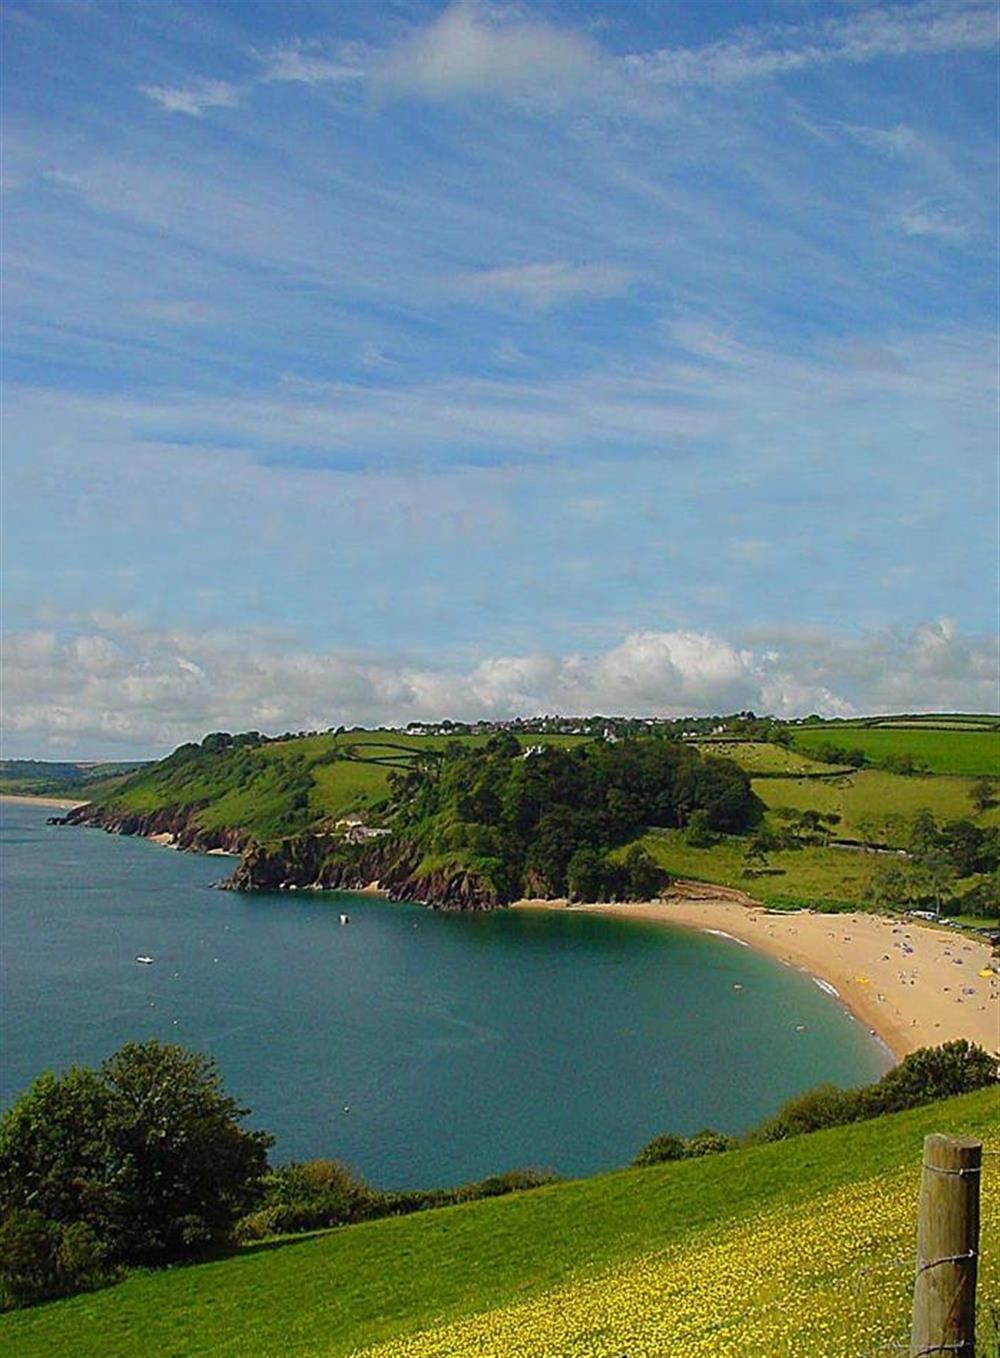 Blackpool Sands is only a 10 minute drive away at Churchgate House, Blackawton